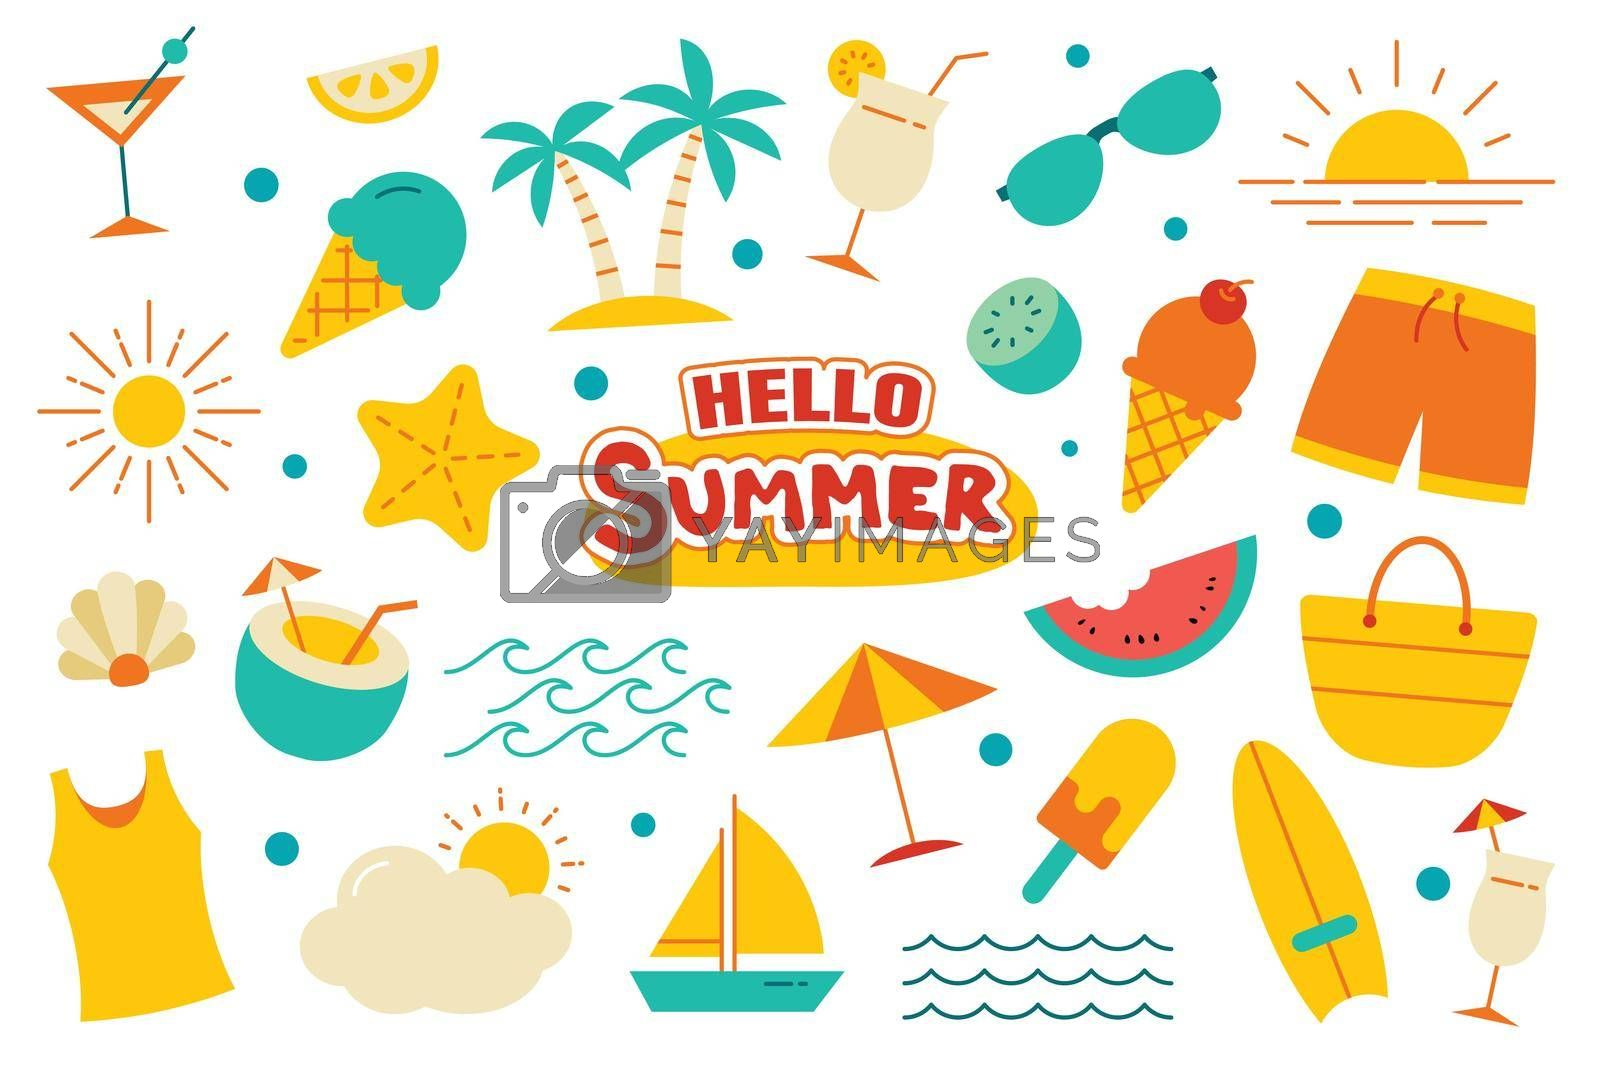 Hello summer collection set flat design on white background. Summer  symbols and objects colorful.